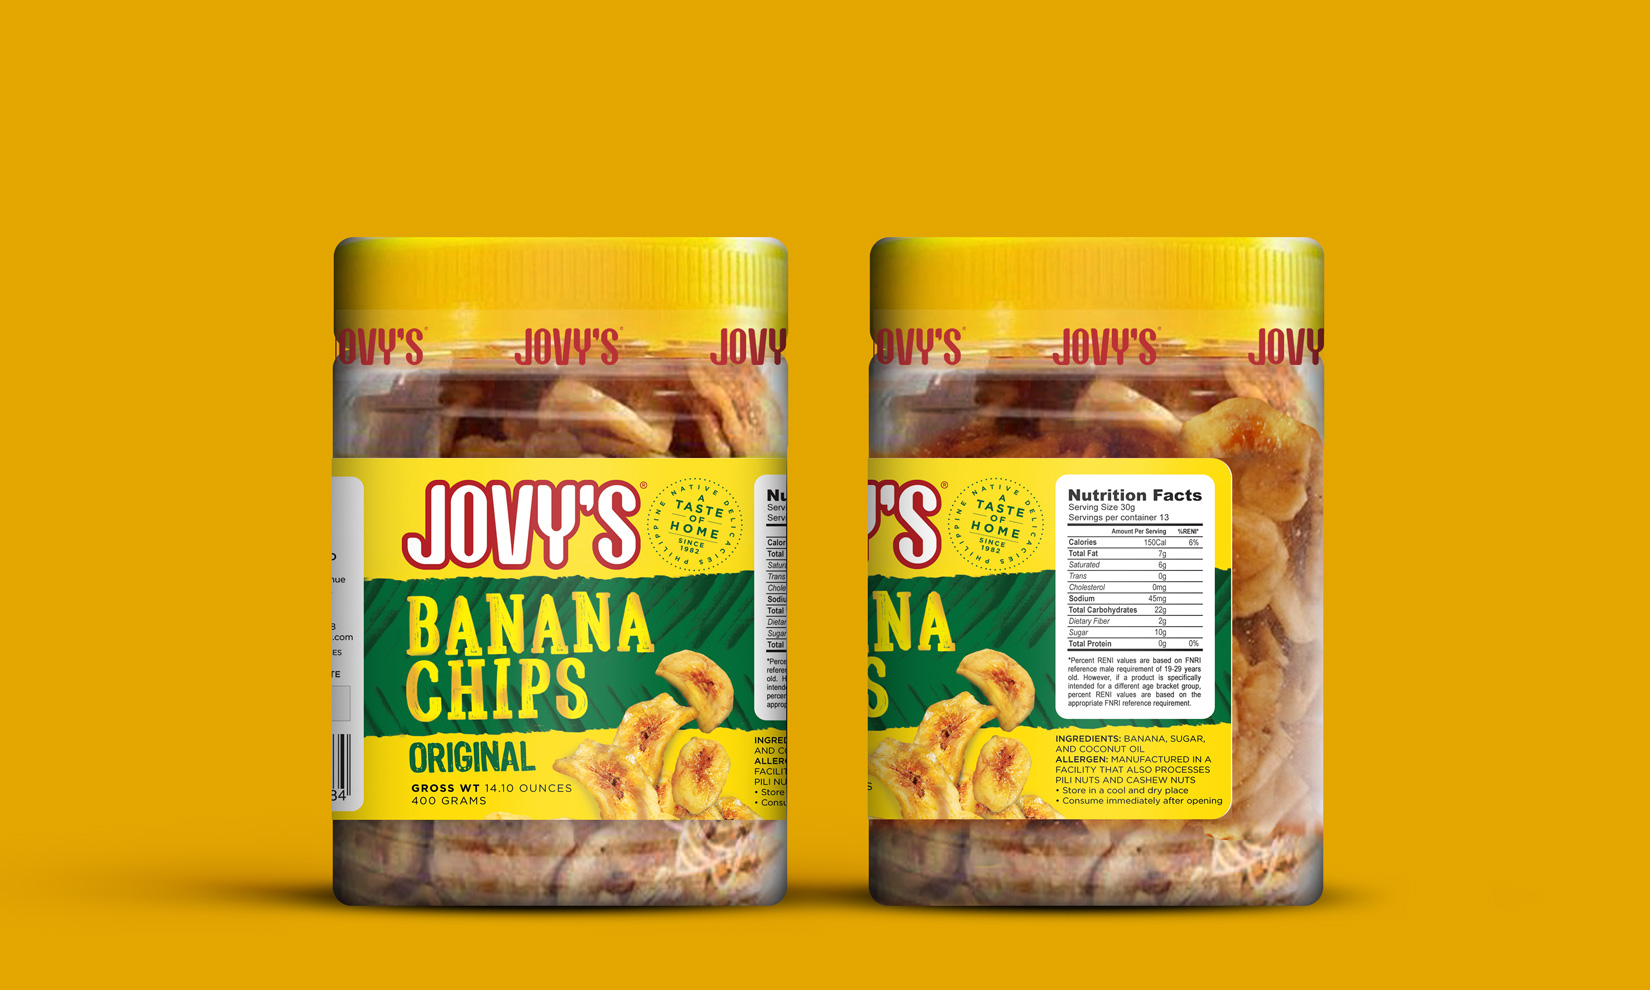 Jovy's-Products-Group-1-Banana-Chips-Packaging-A